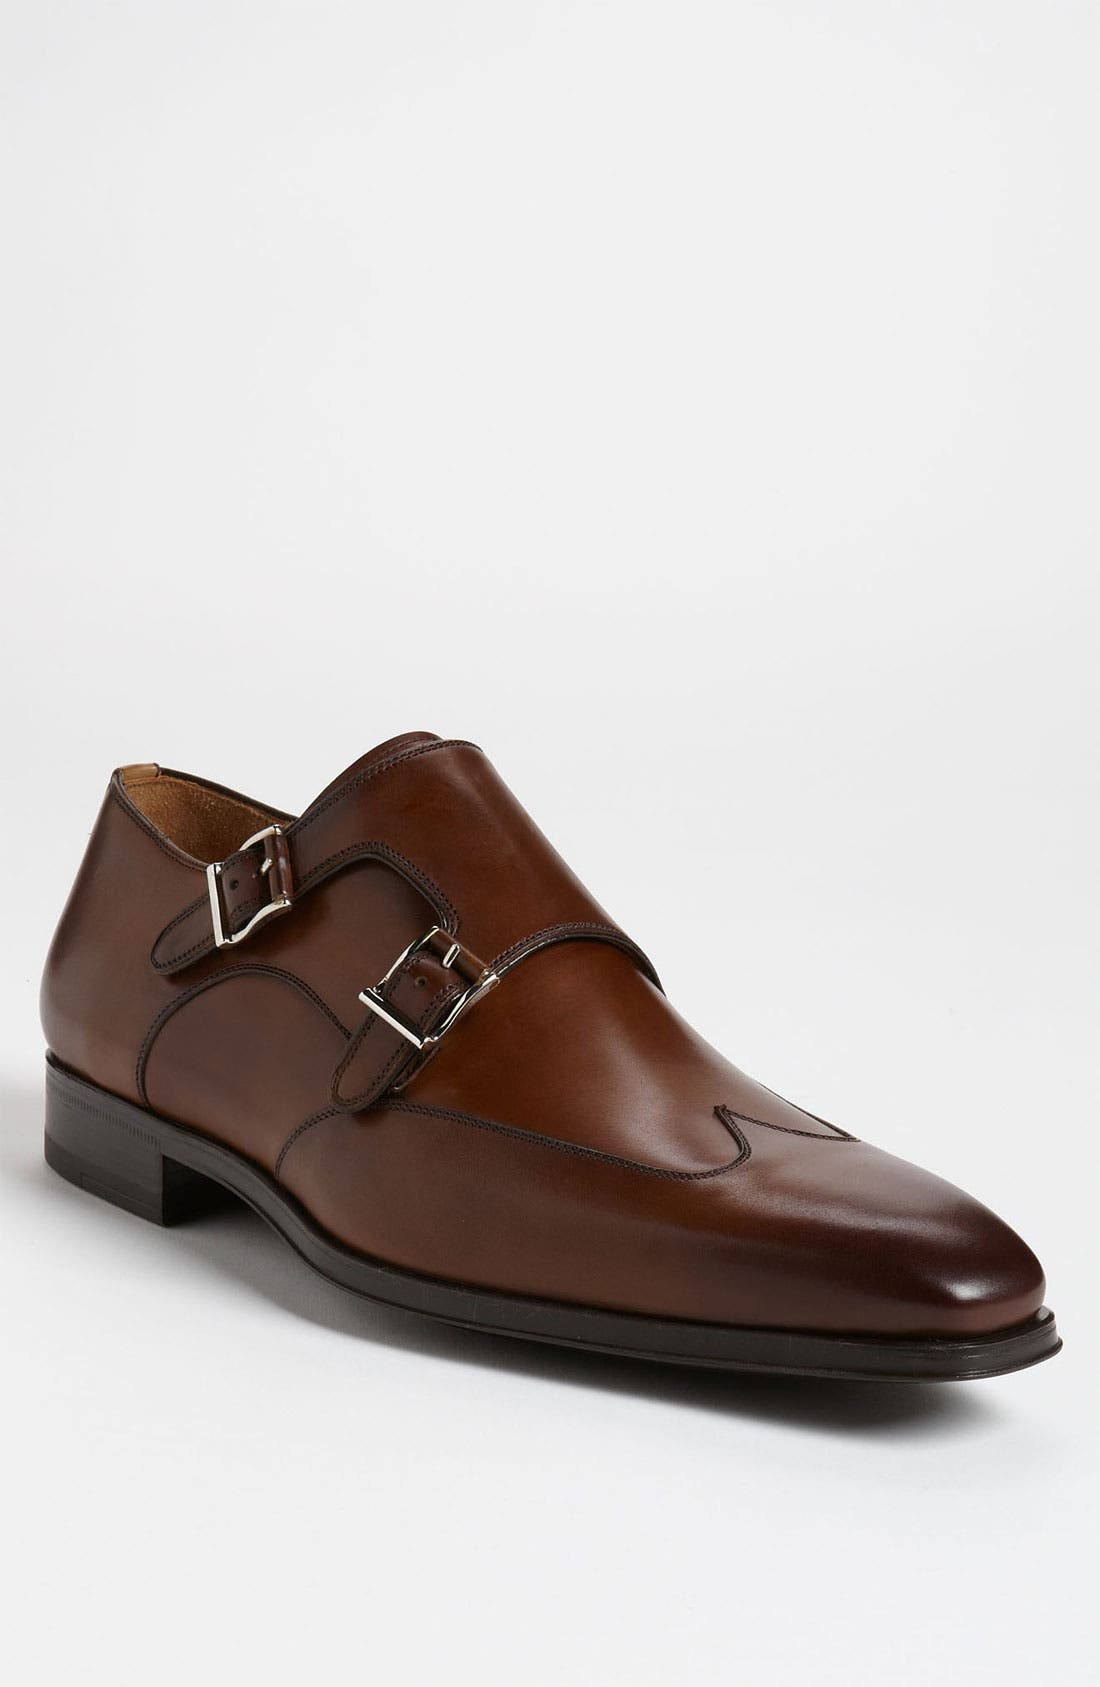 Main Image - Magnanni 'Claudio' Double Monk Strap Wingtip Slip-On